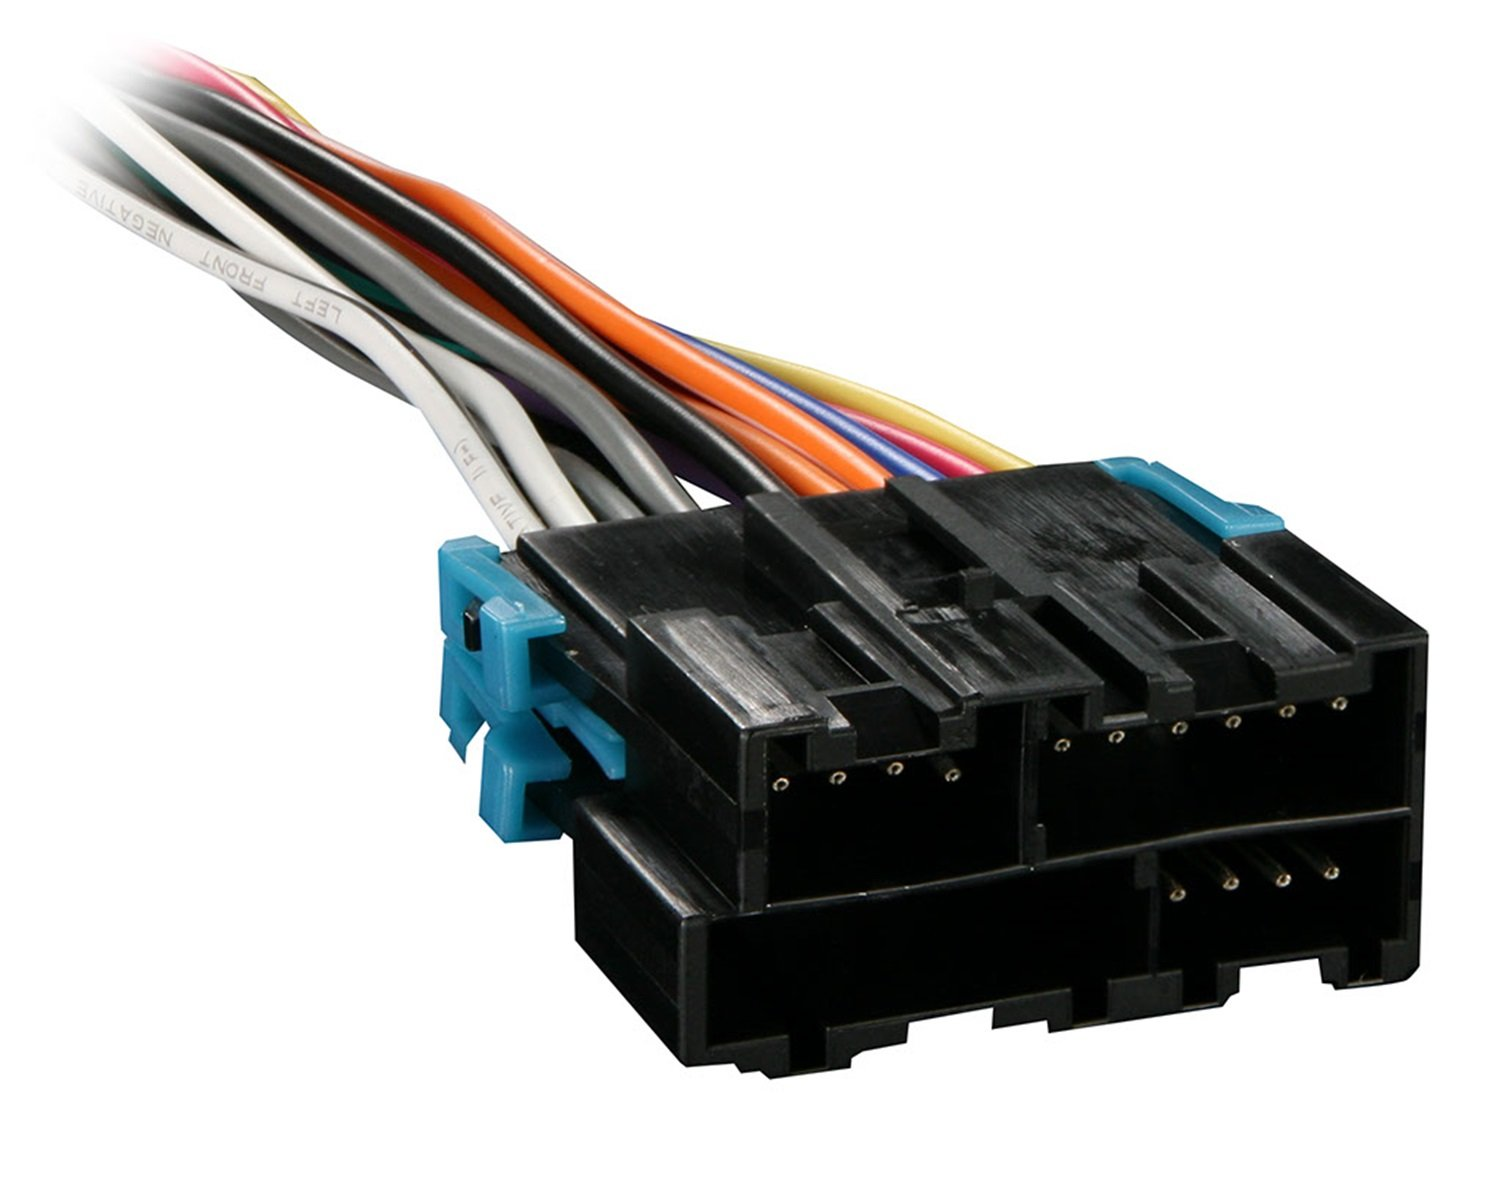 61 CwjZt1hL._SL1500_ radio wiring harnesses amazon com how much does it cost to replace a wiring harness at aneh.co